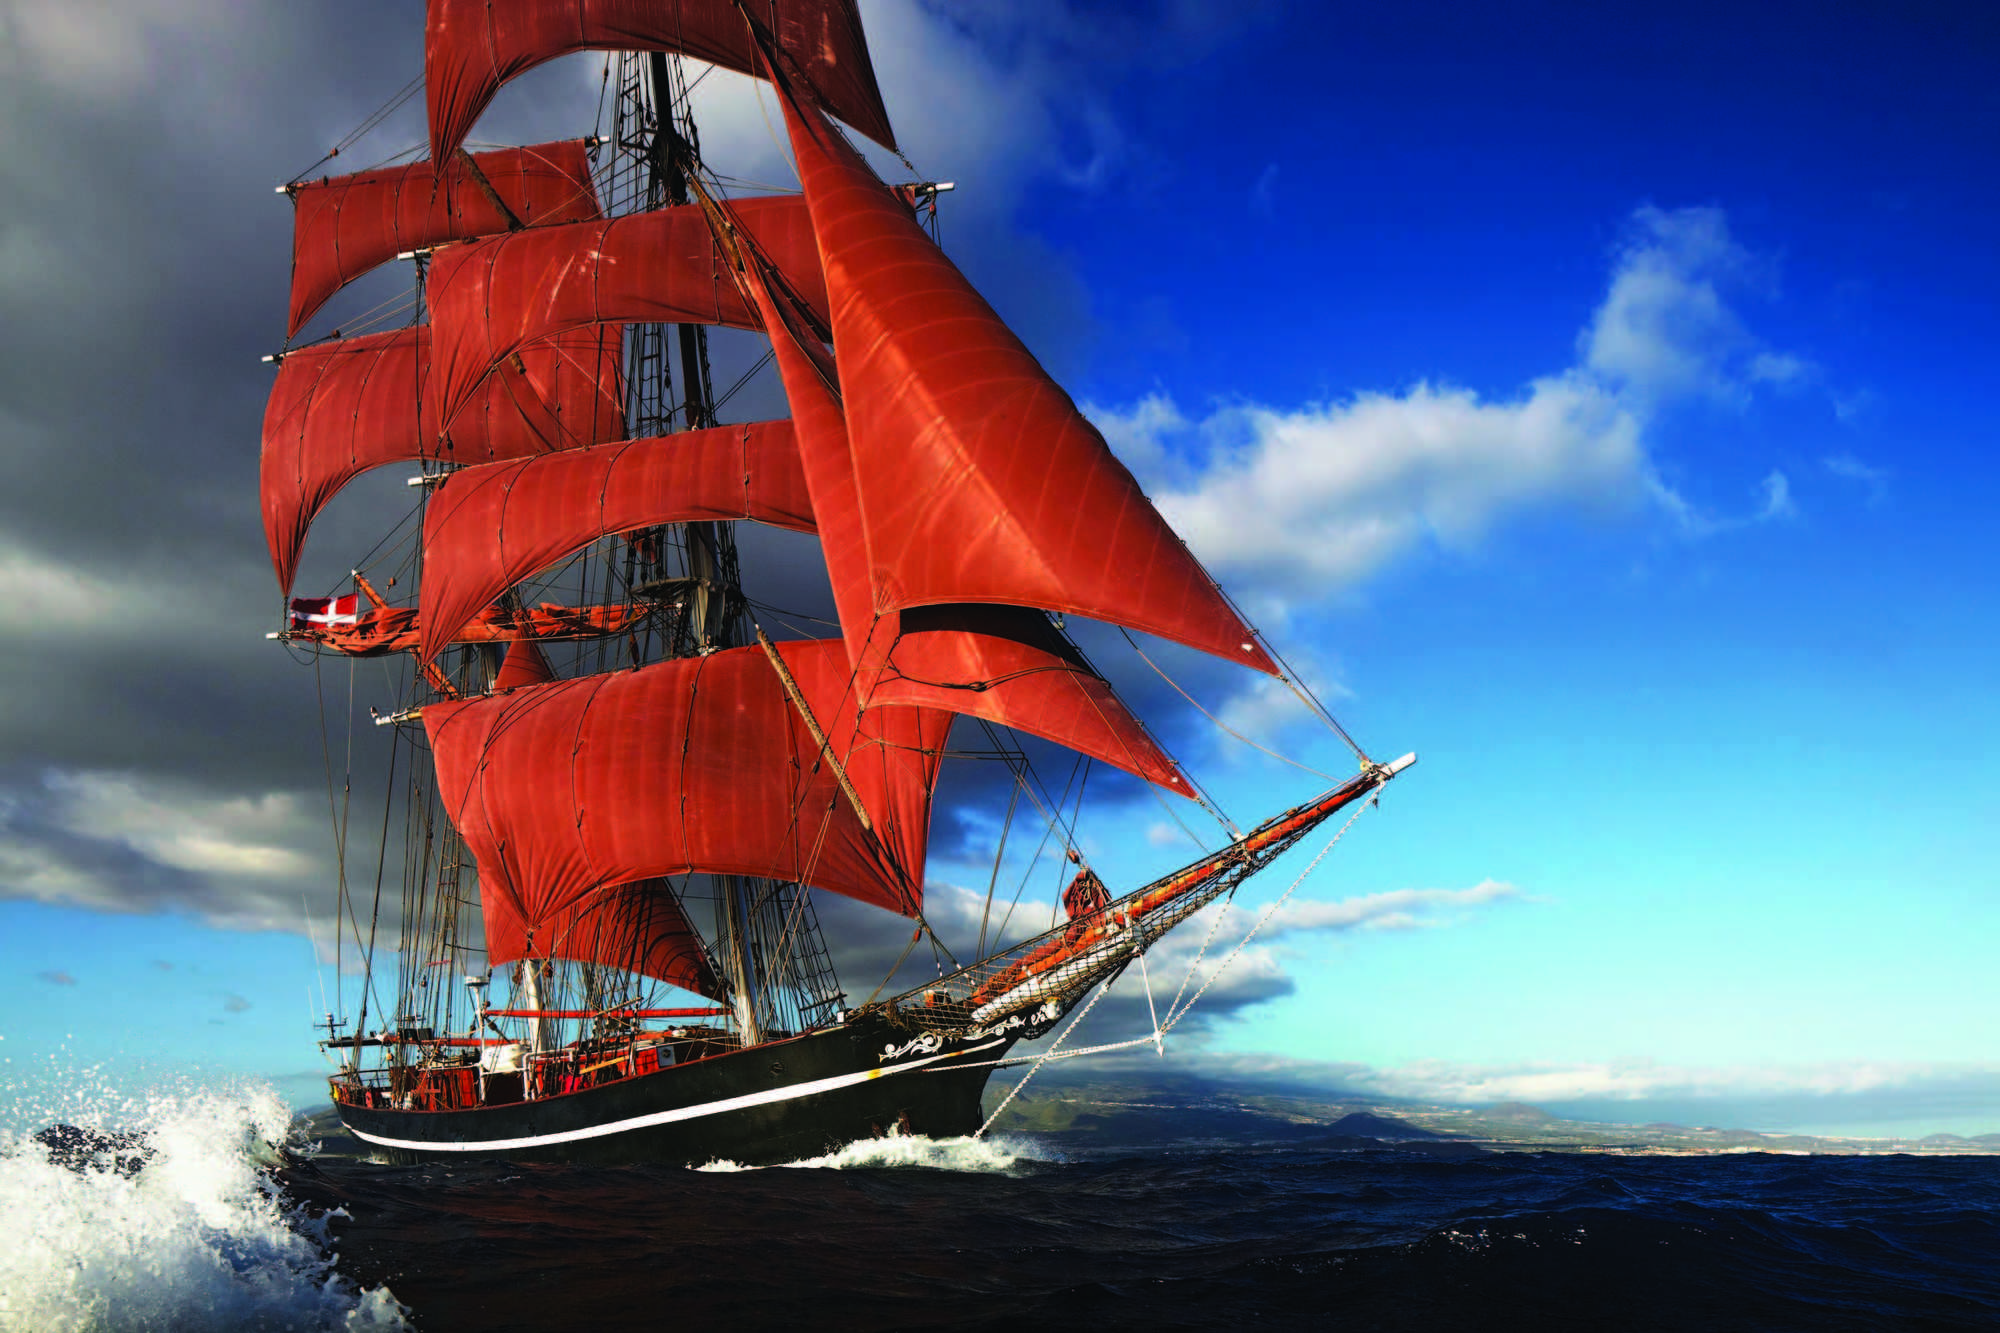 http://weboatlovers.wehomeowners.com/wp-content/uploads/2016/07/Tall-Ship.jpg